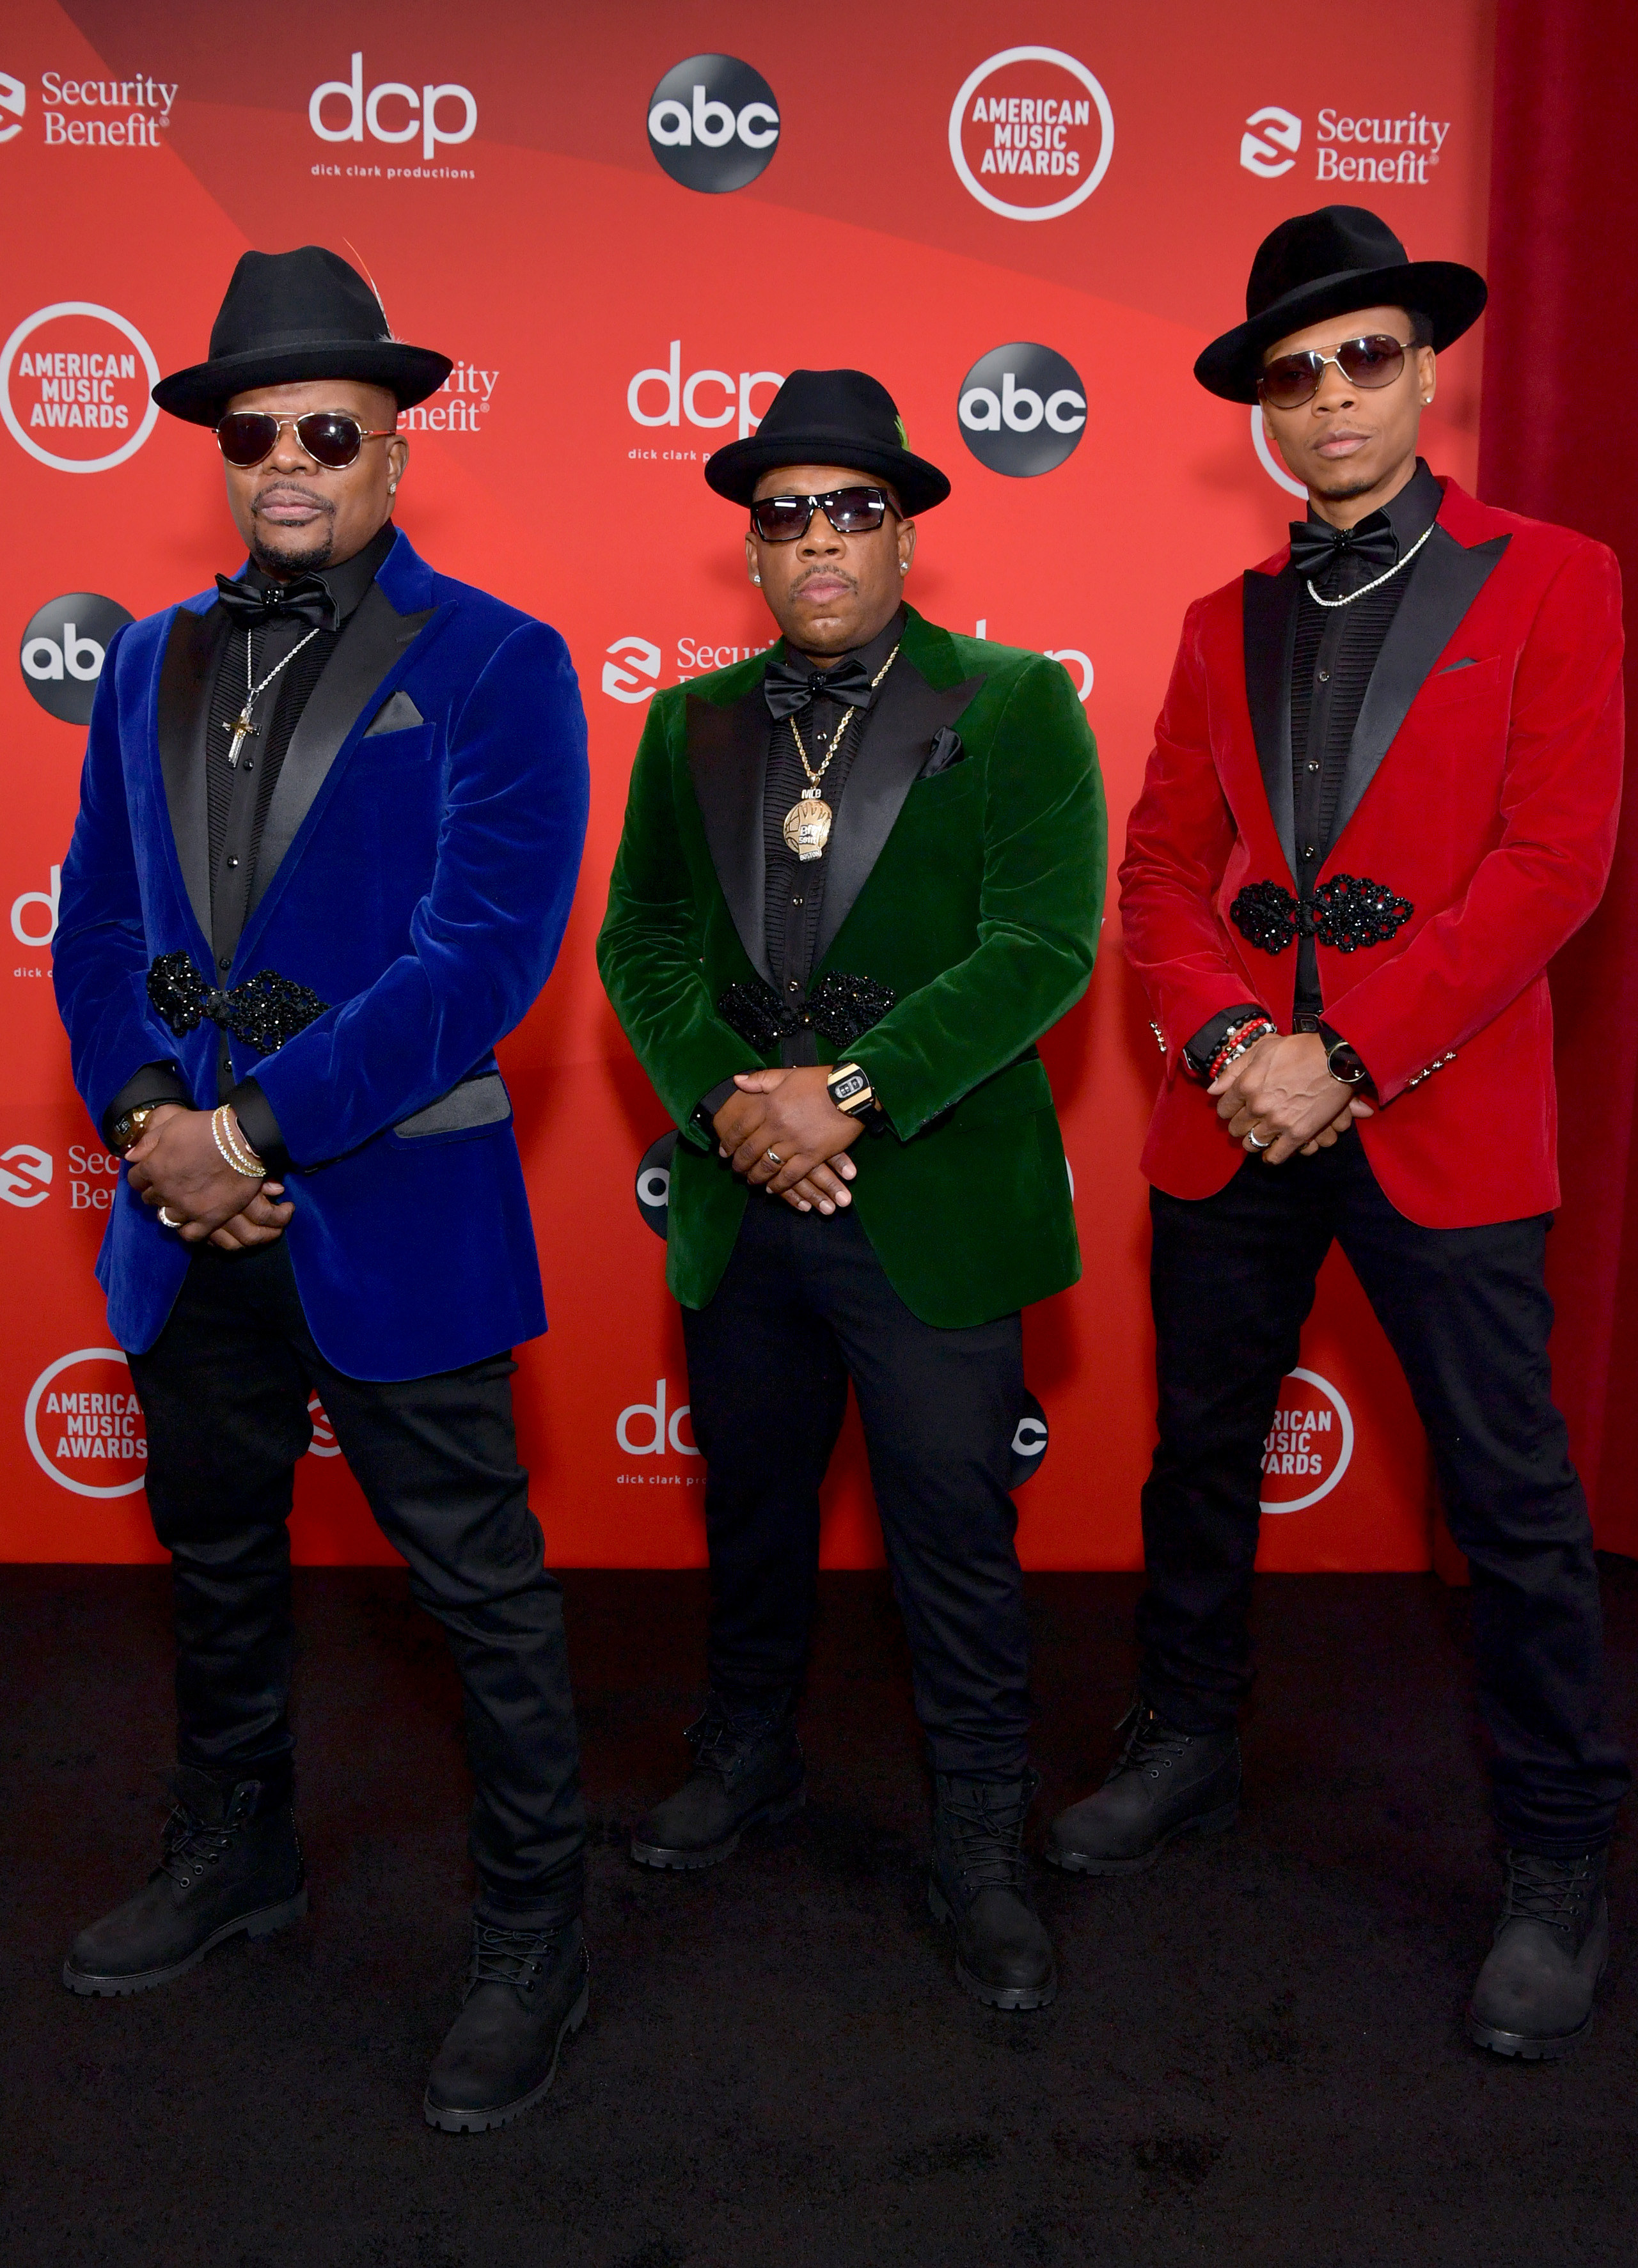 Ricky Bell, Michael Bivins, and Ronnie DeVoe of Bell Biv DeVoe attend the 2020 American Music Awards in coordinating suits